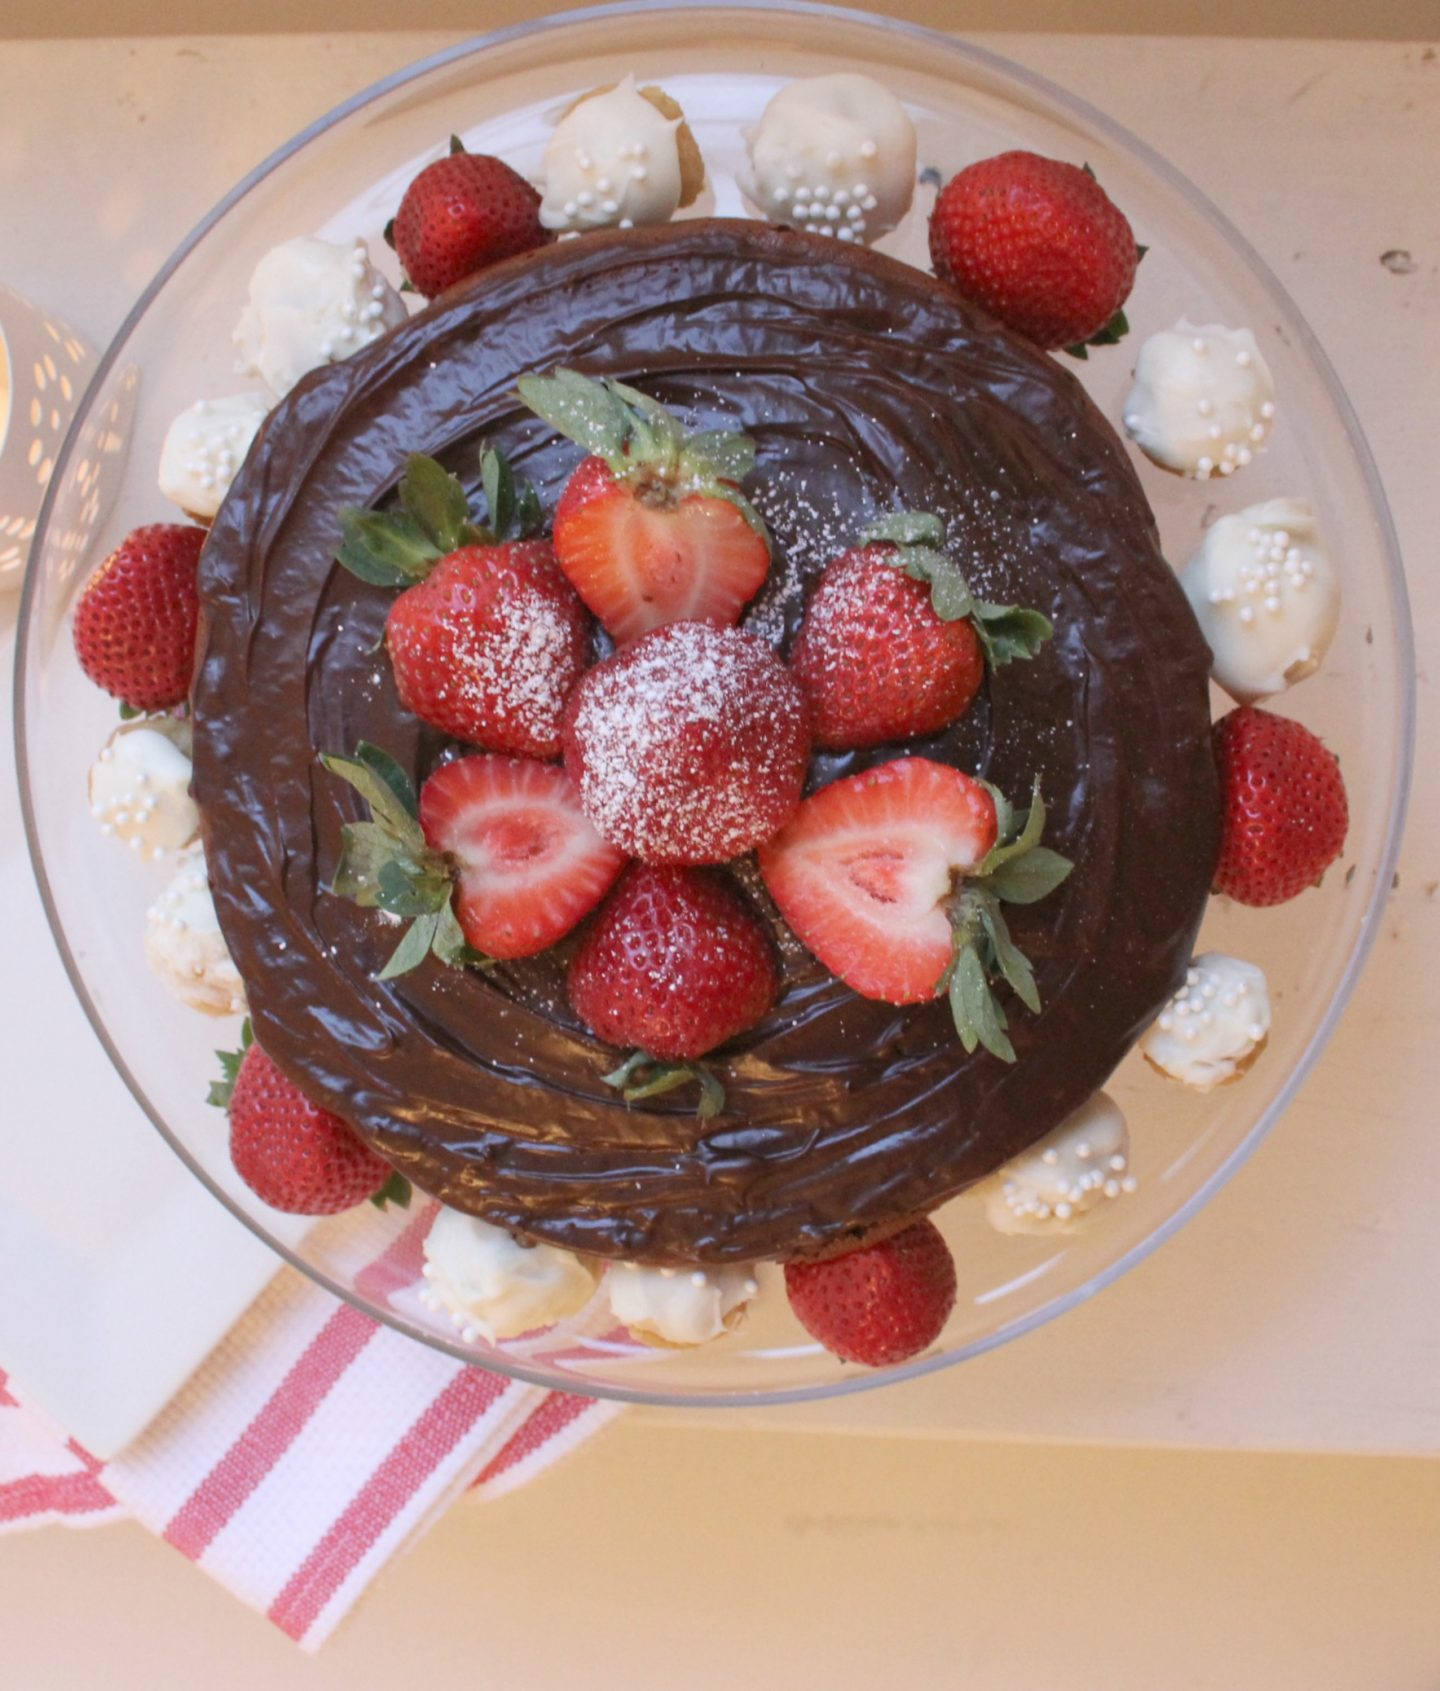 Chocolate cake with chocolate ganache, strawberries, and snowball truffles - Hello Lovely Studio